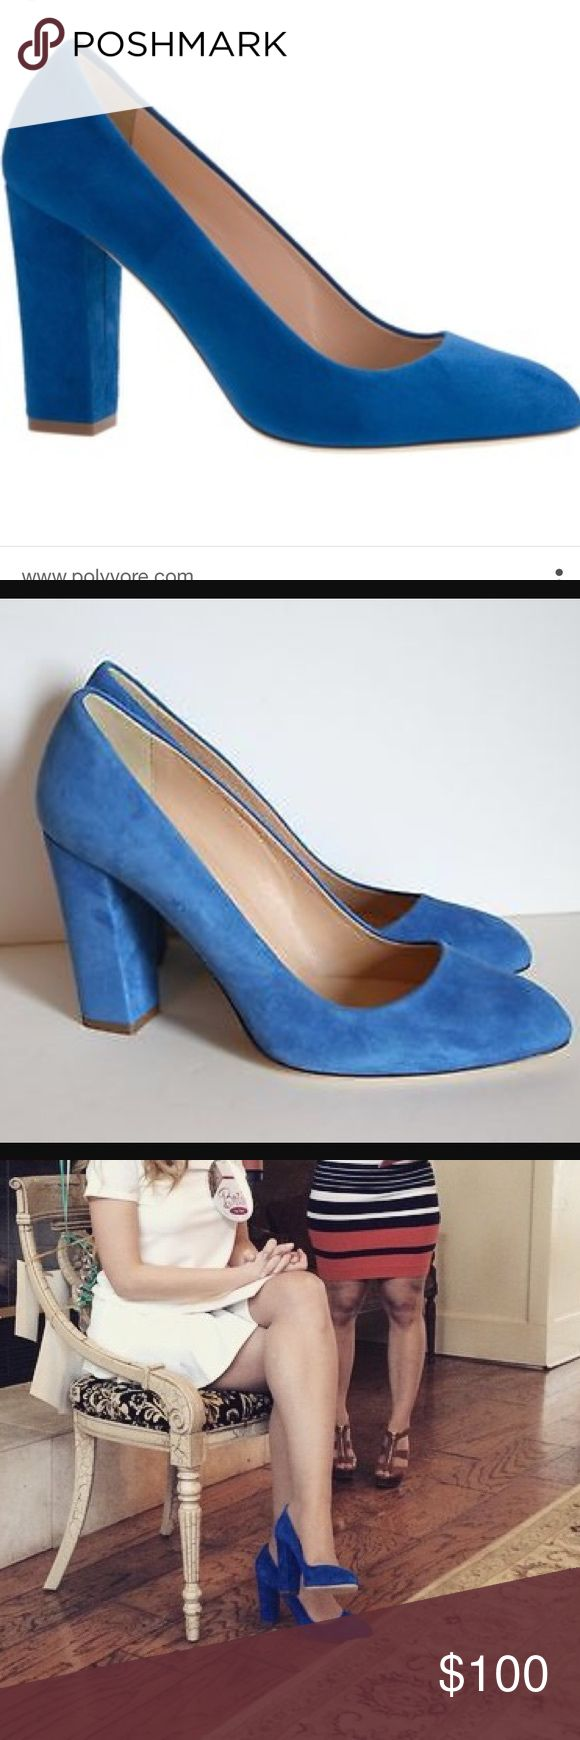 Jcrew Stella blue suede pump Jcrew Stella blue suede pump only worn once with original box gorgeous and comfortable blue suede pump with nice thick heel practically new J. Crew Shoes Heels